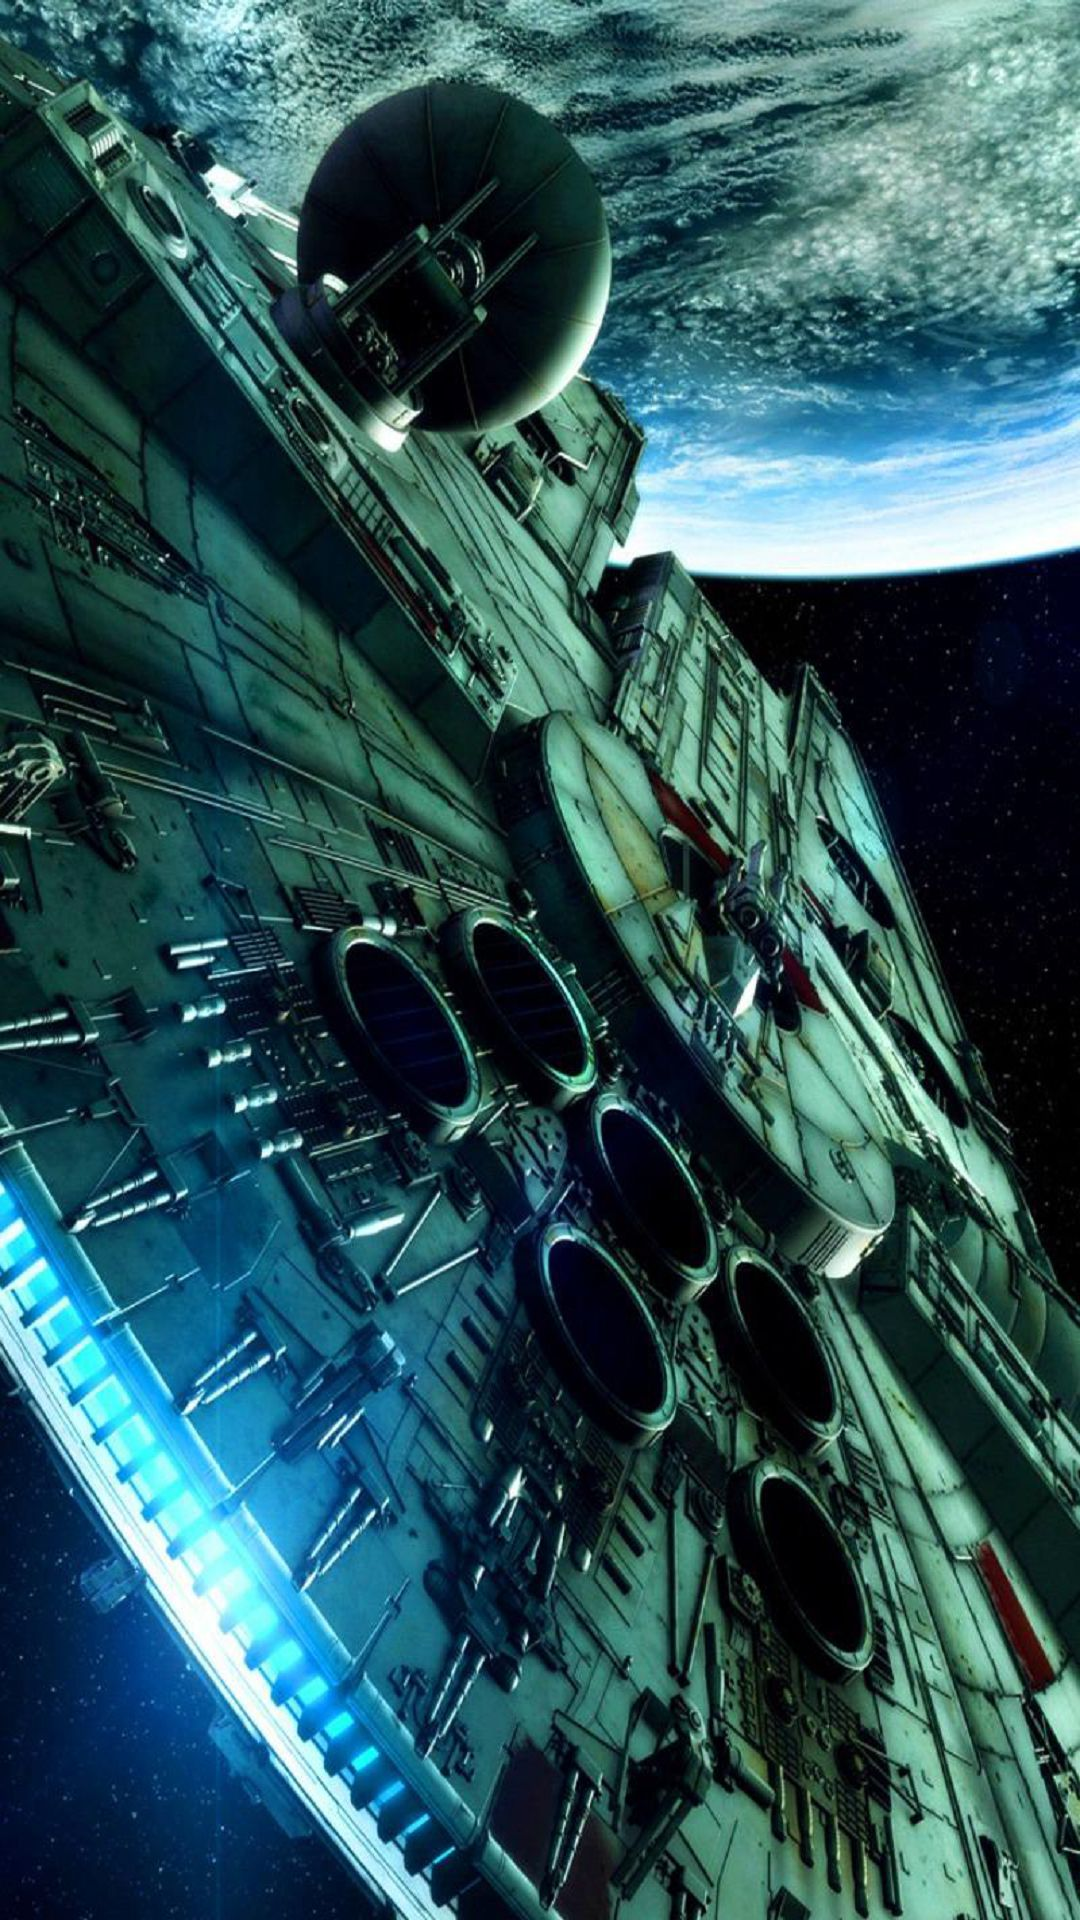 Star Wars Spaceship Science Fiction iPhone 6 Plus HD Wallpaper HD 1080x1920